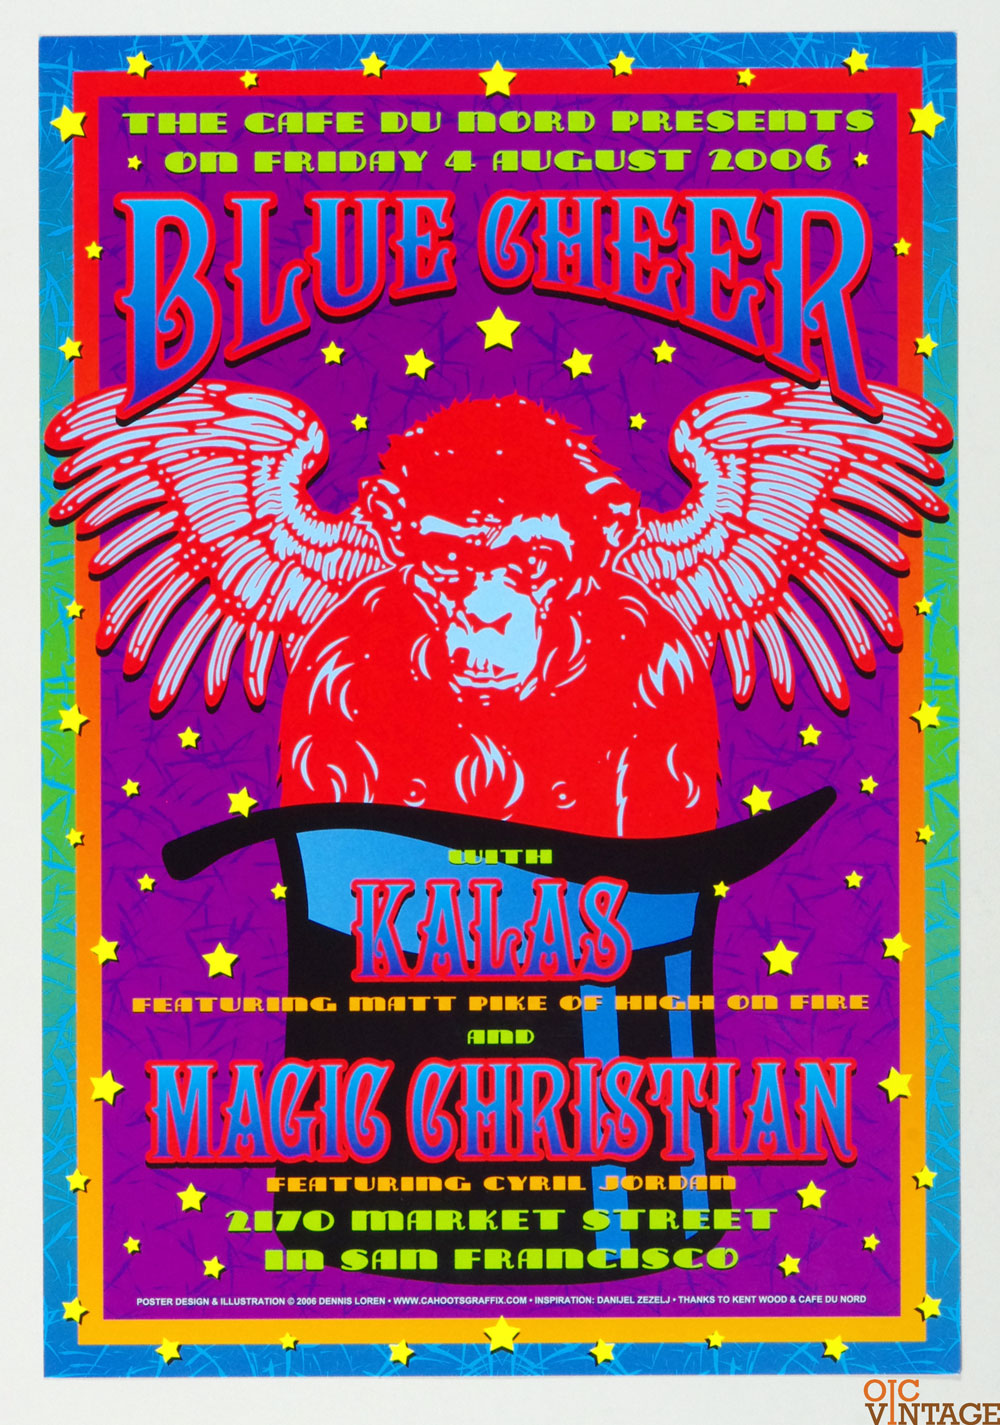 Blue Cheer Poster 2006 Aug 5 Cafe Du Nord San Francisco w/ Kalas Magic Christian